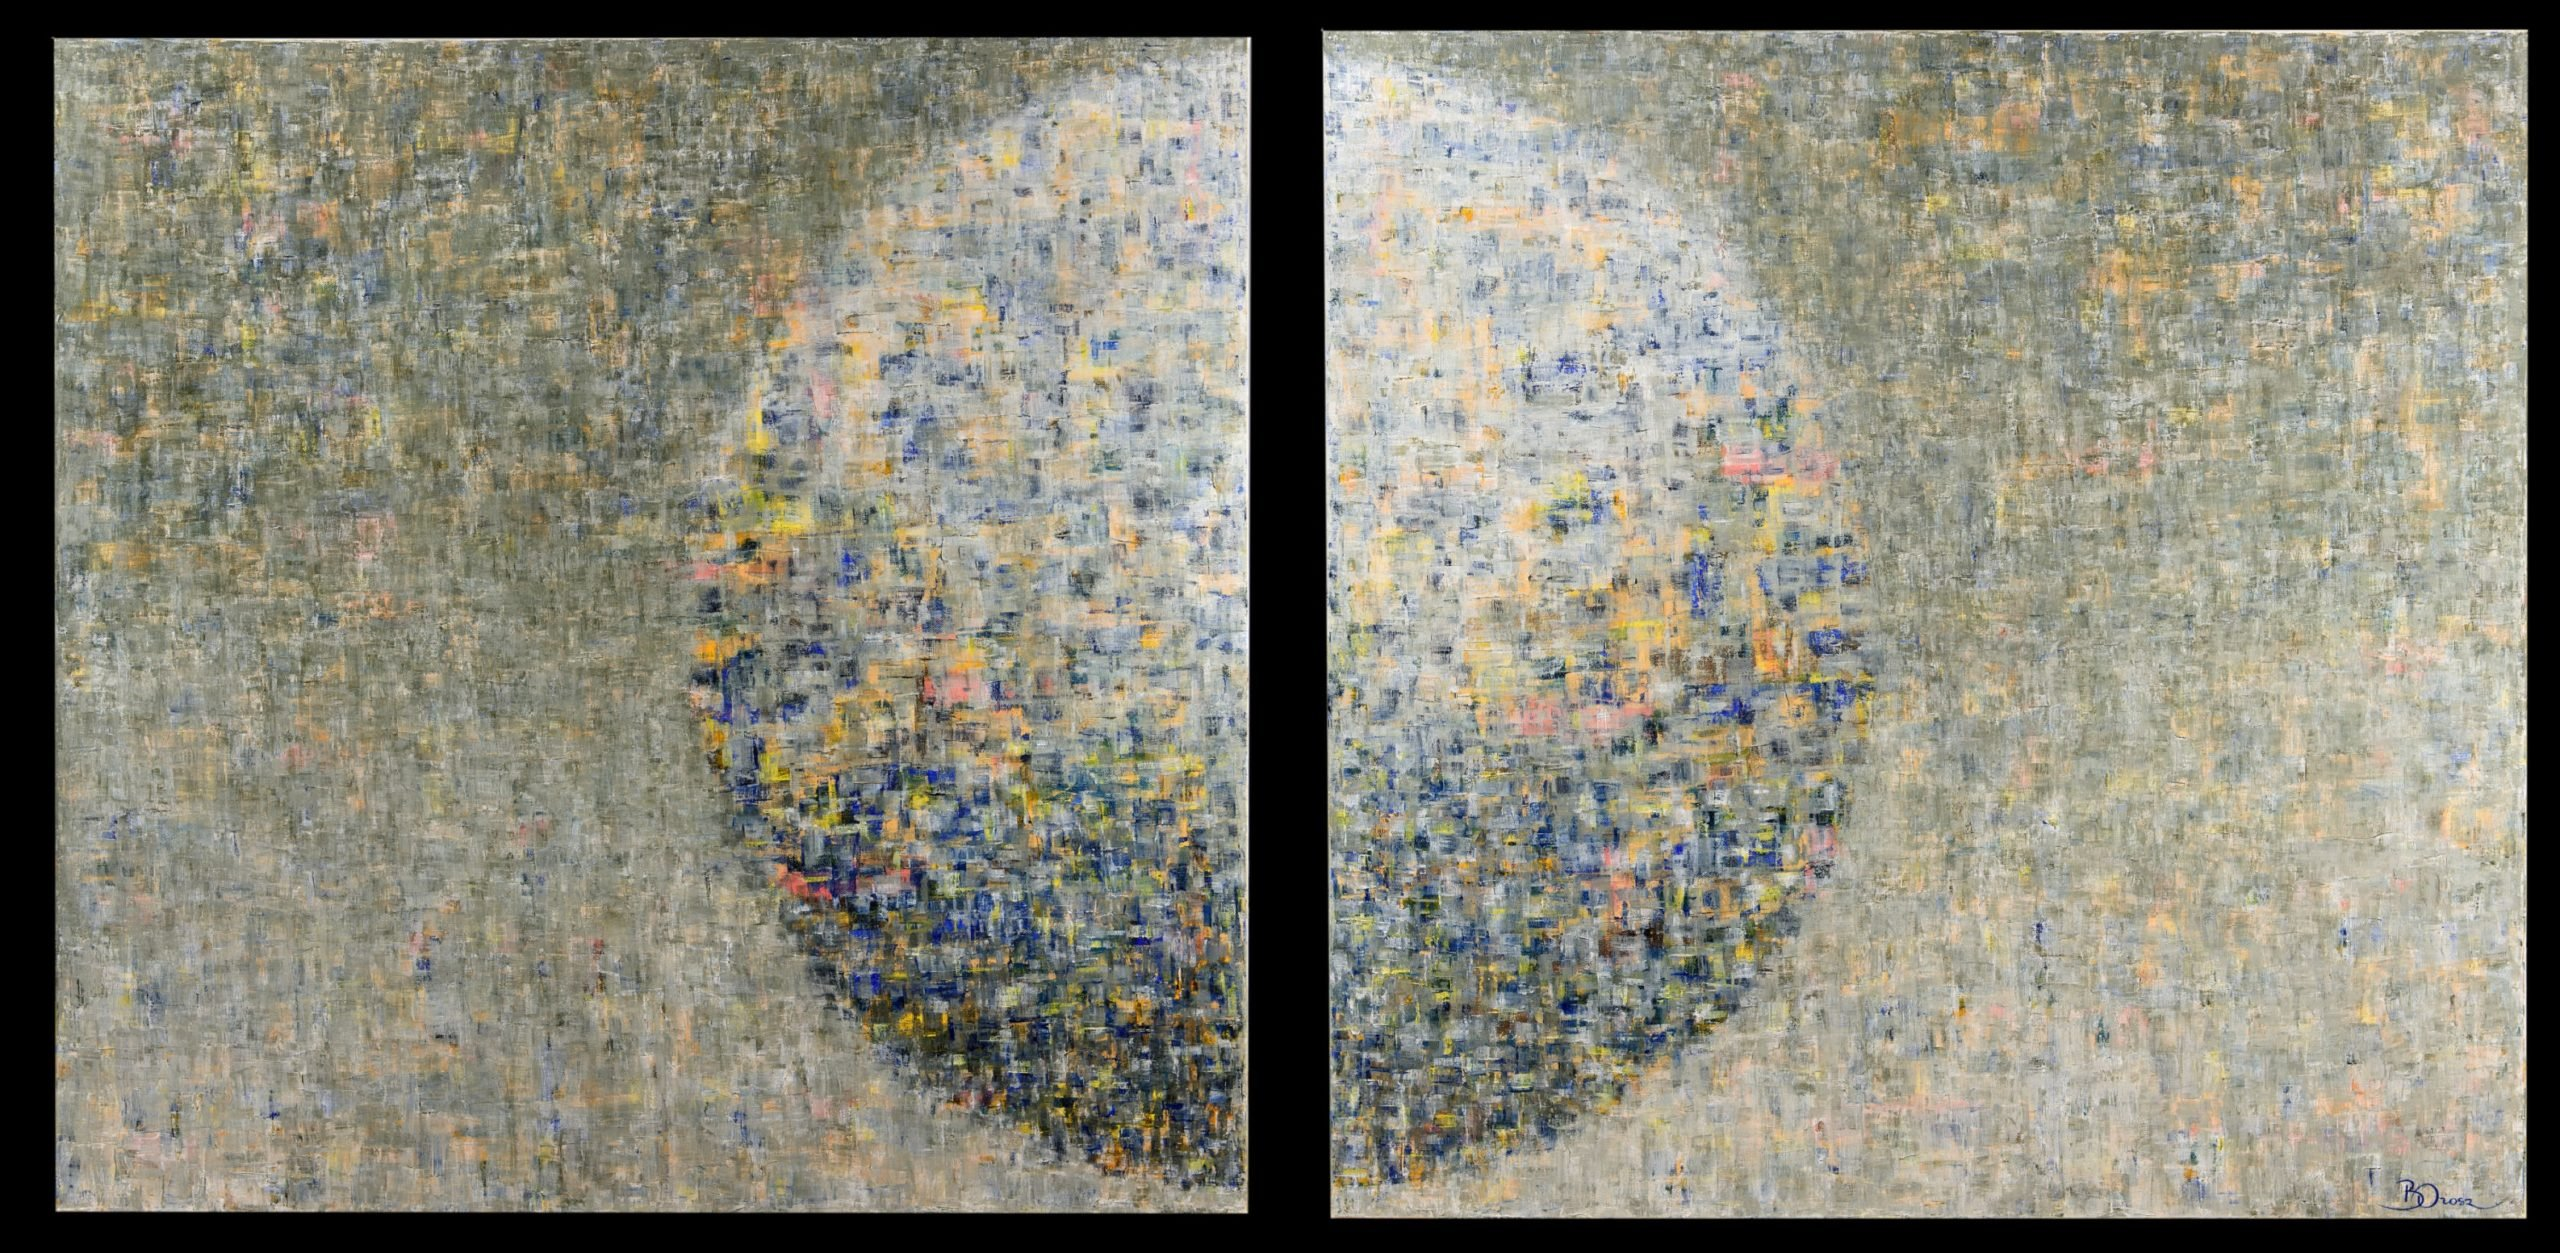 diptych of two semi circles in the middle to create a full circle with dashes of paint in blue, black, yellow and orange